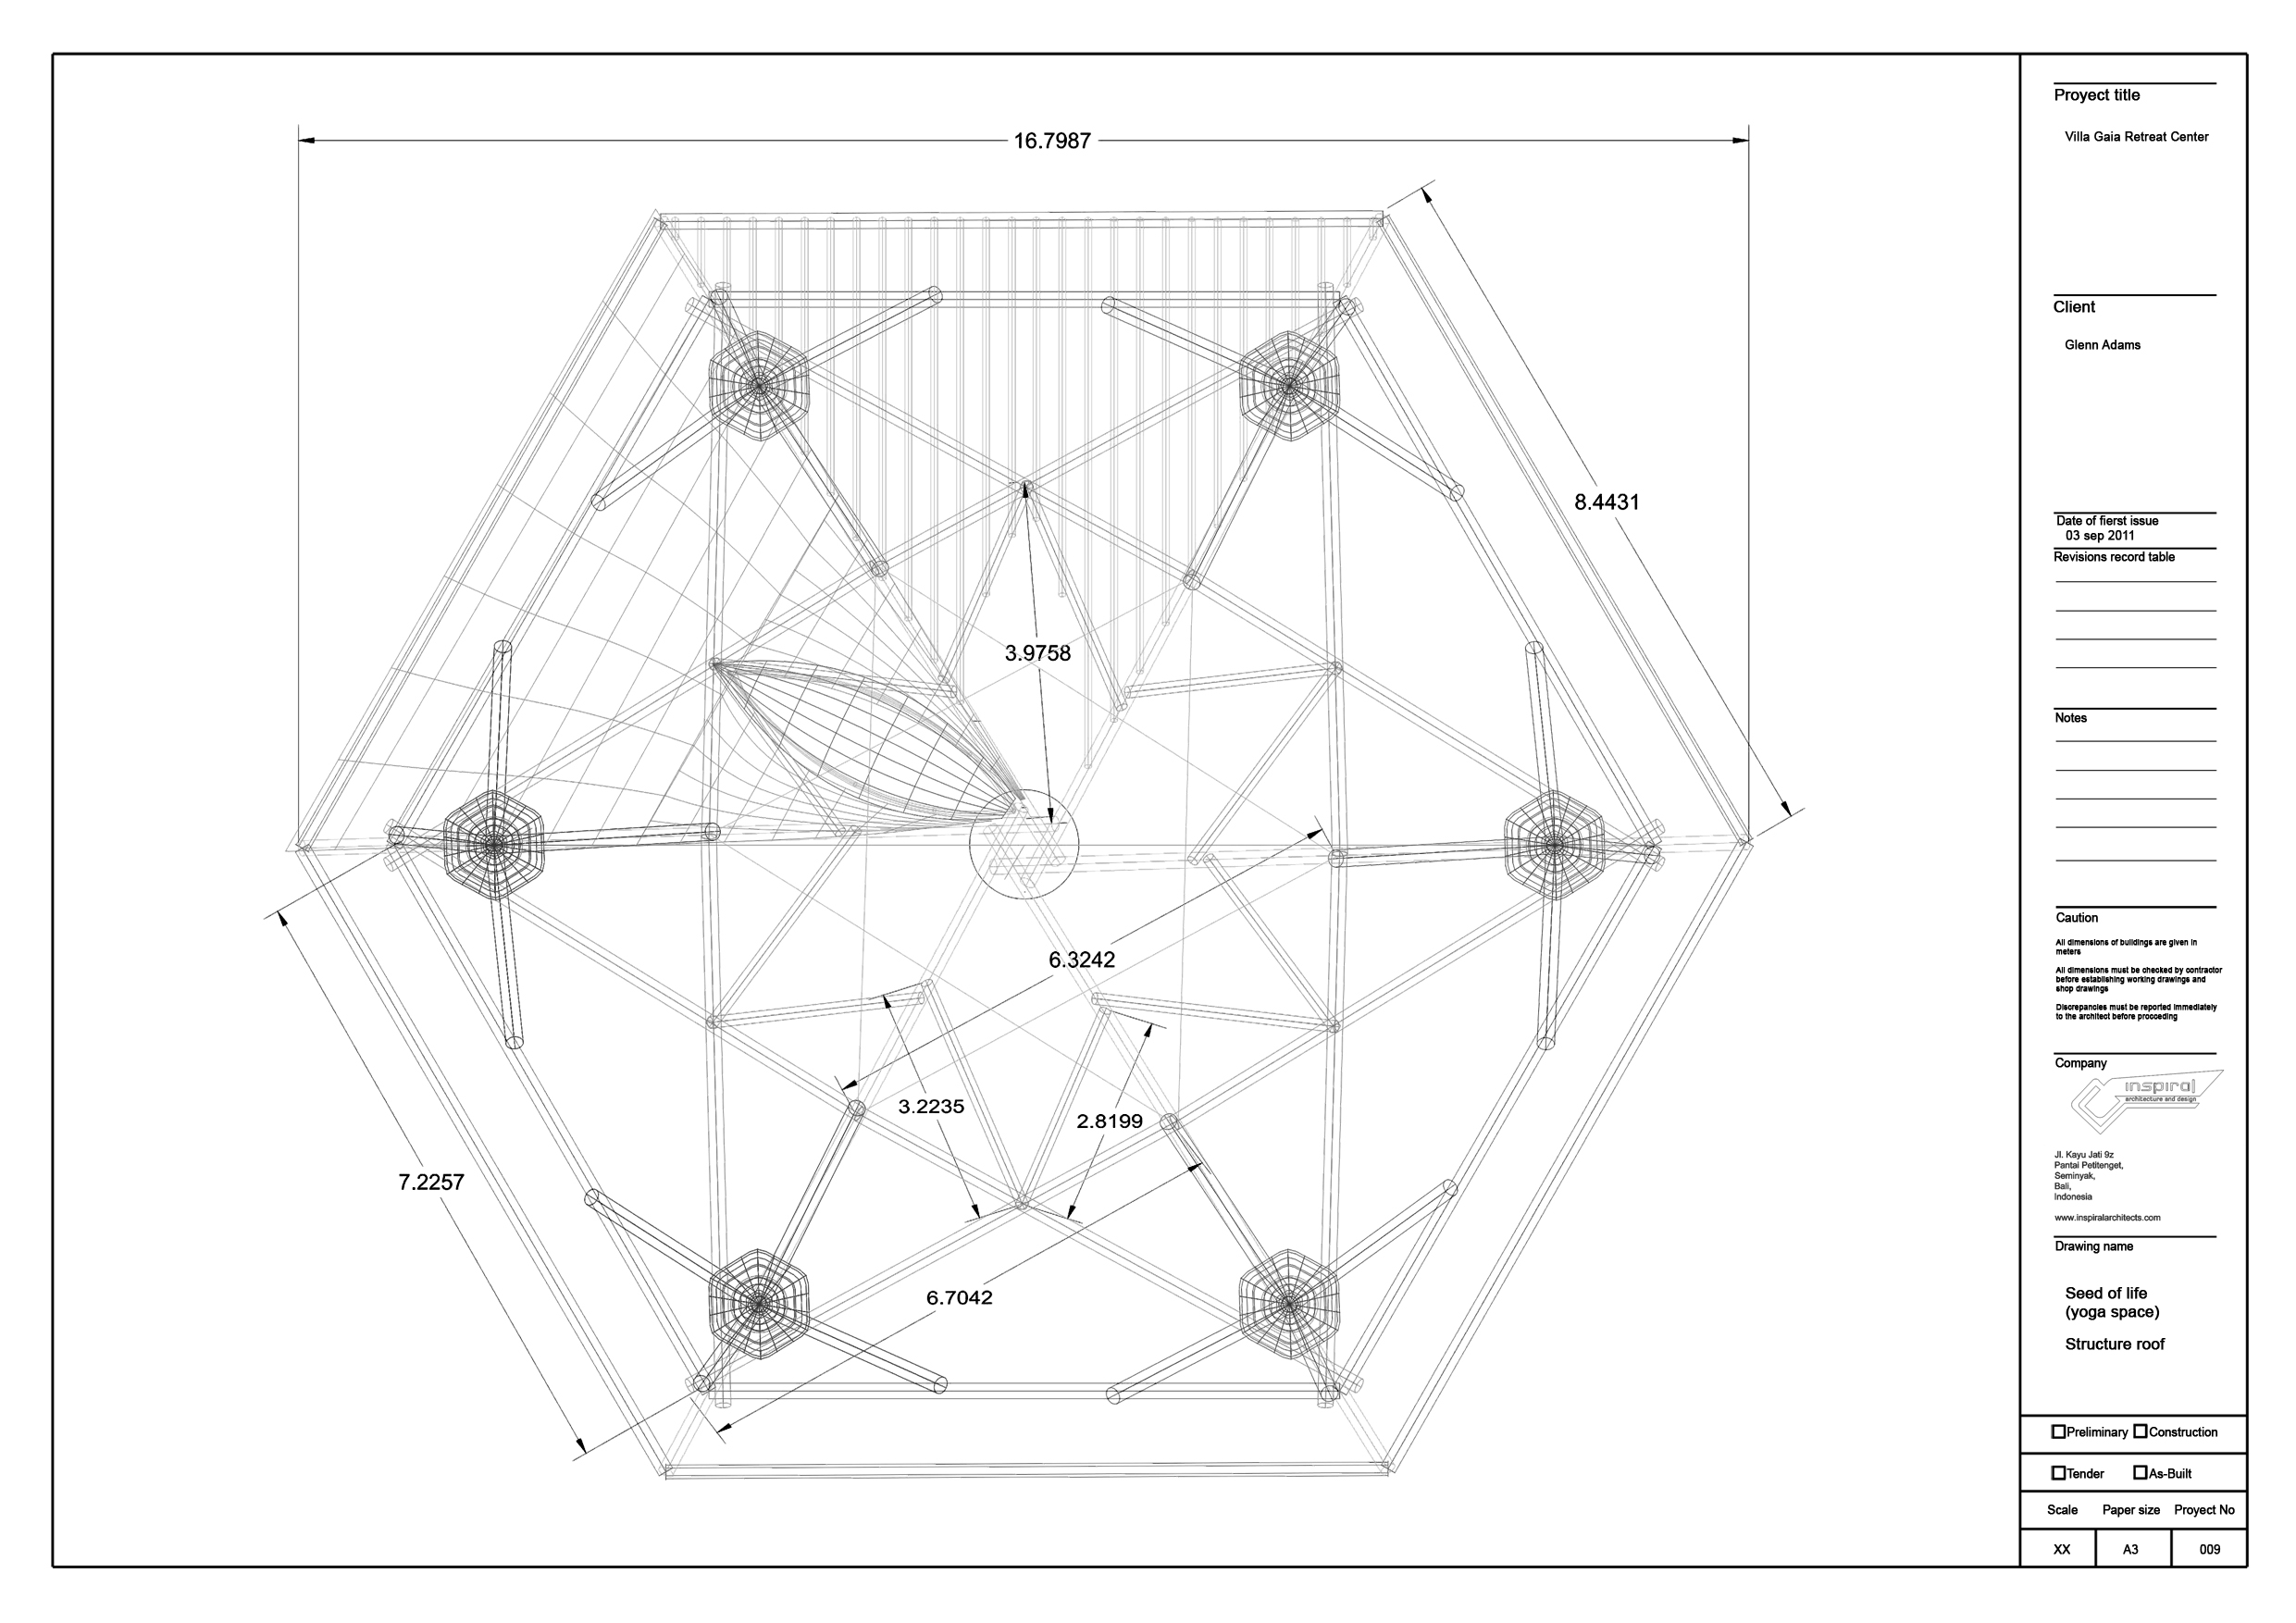 10 seed of life (yoga space)structure roof copia.jpg